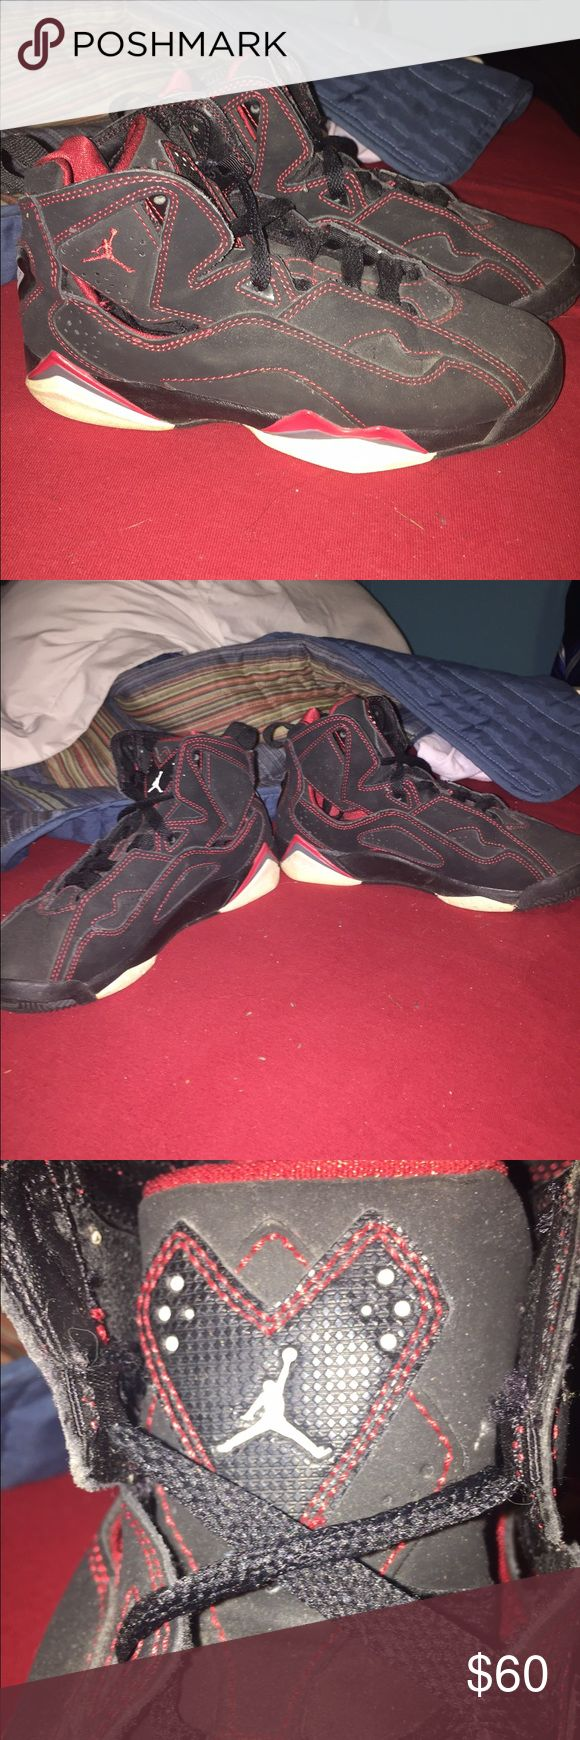 Jordan True Flight Used but in good condition. Signs of wear but no tears! Comfy and awesome shoes but must part ways. Youth size 4 Shoes Sneakers